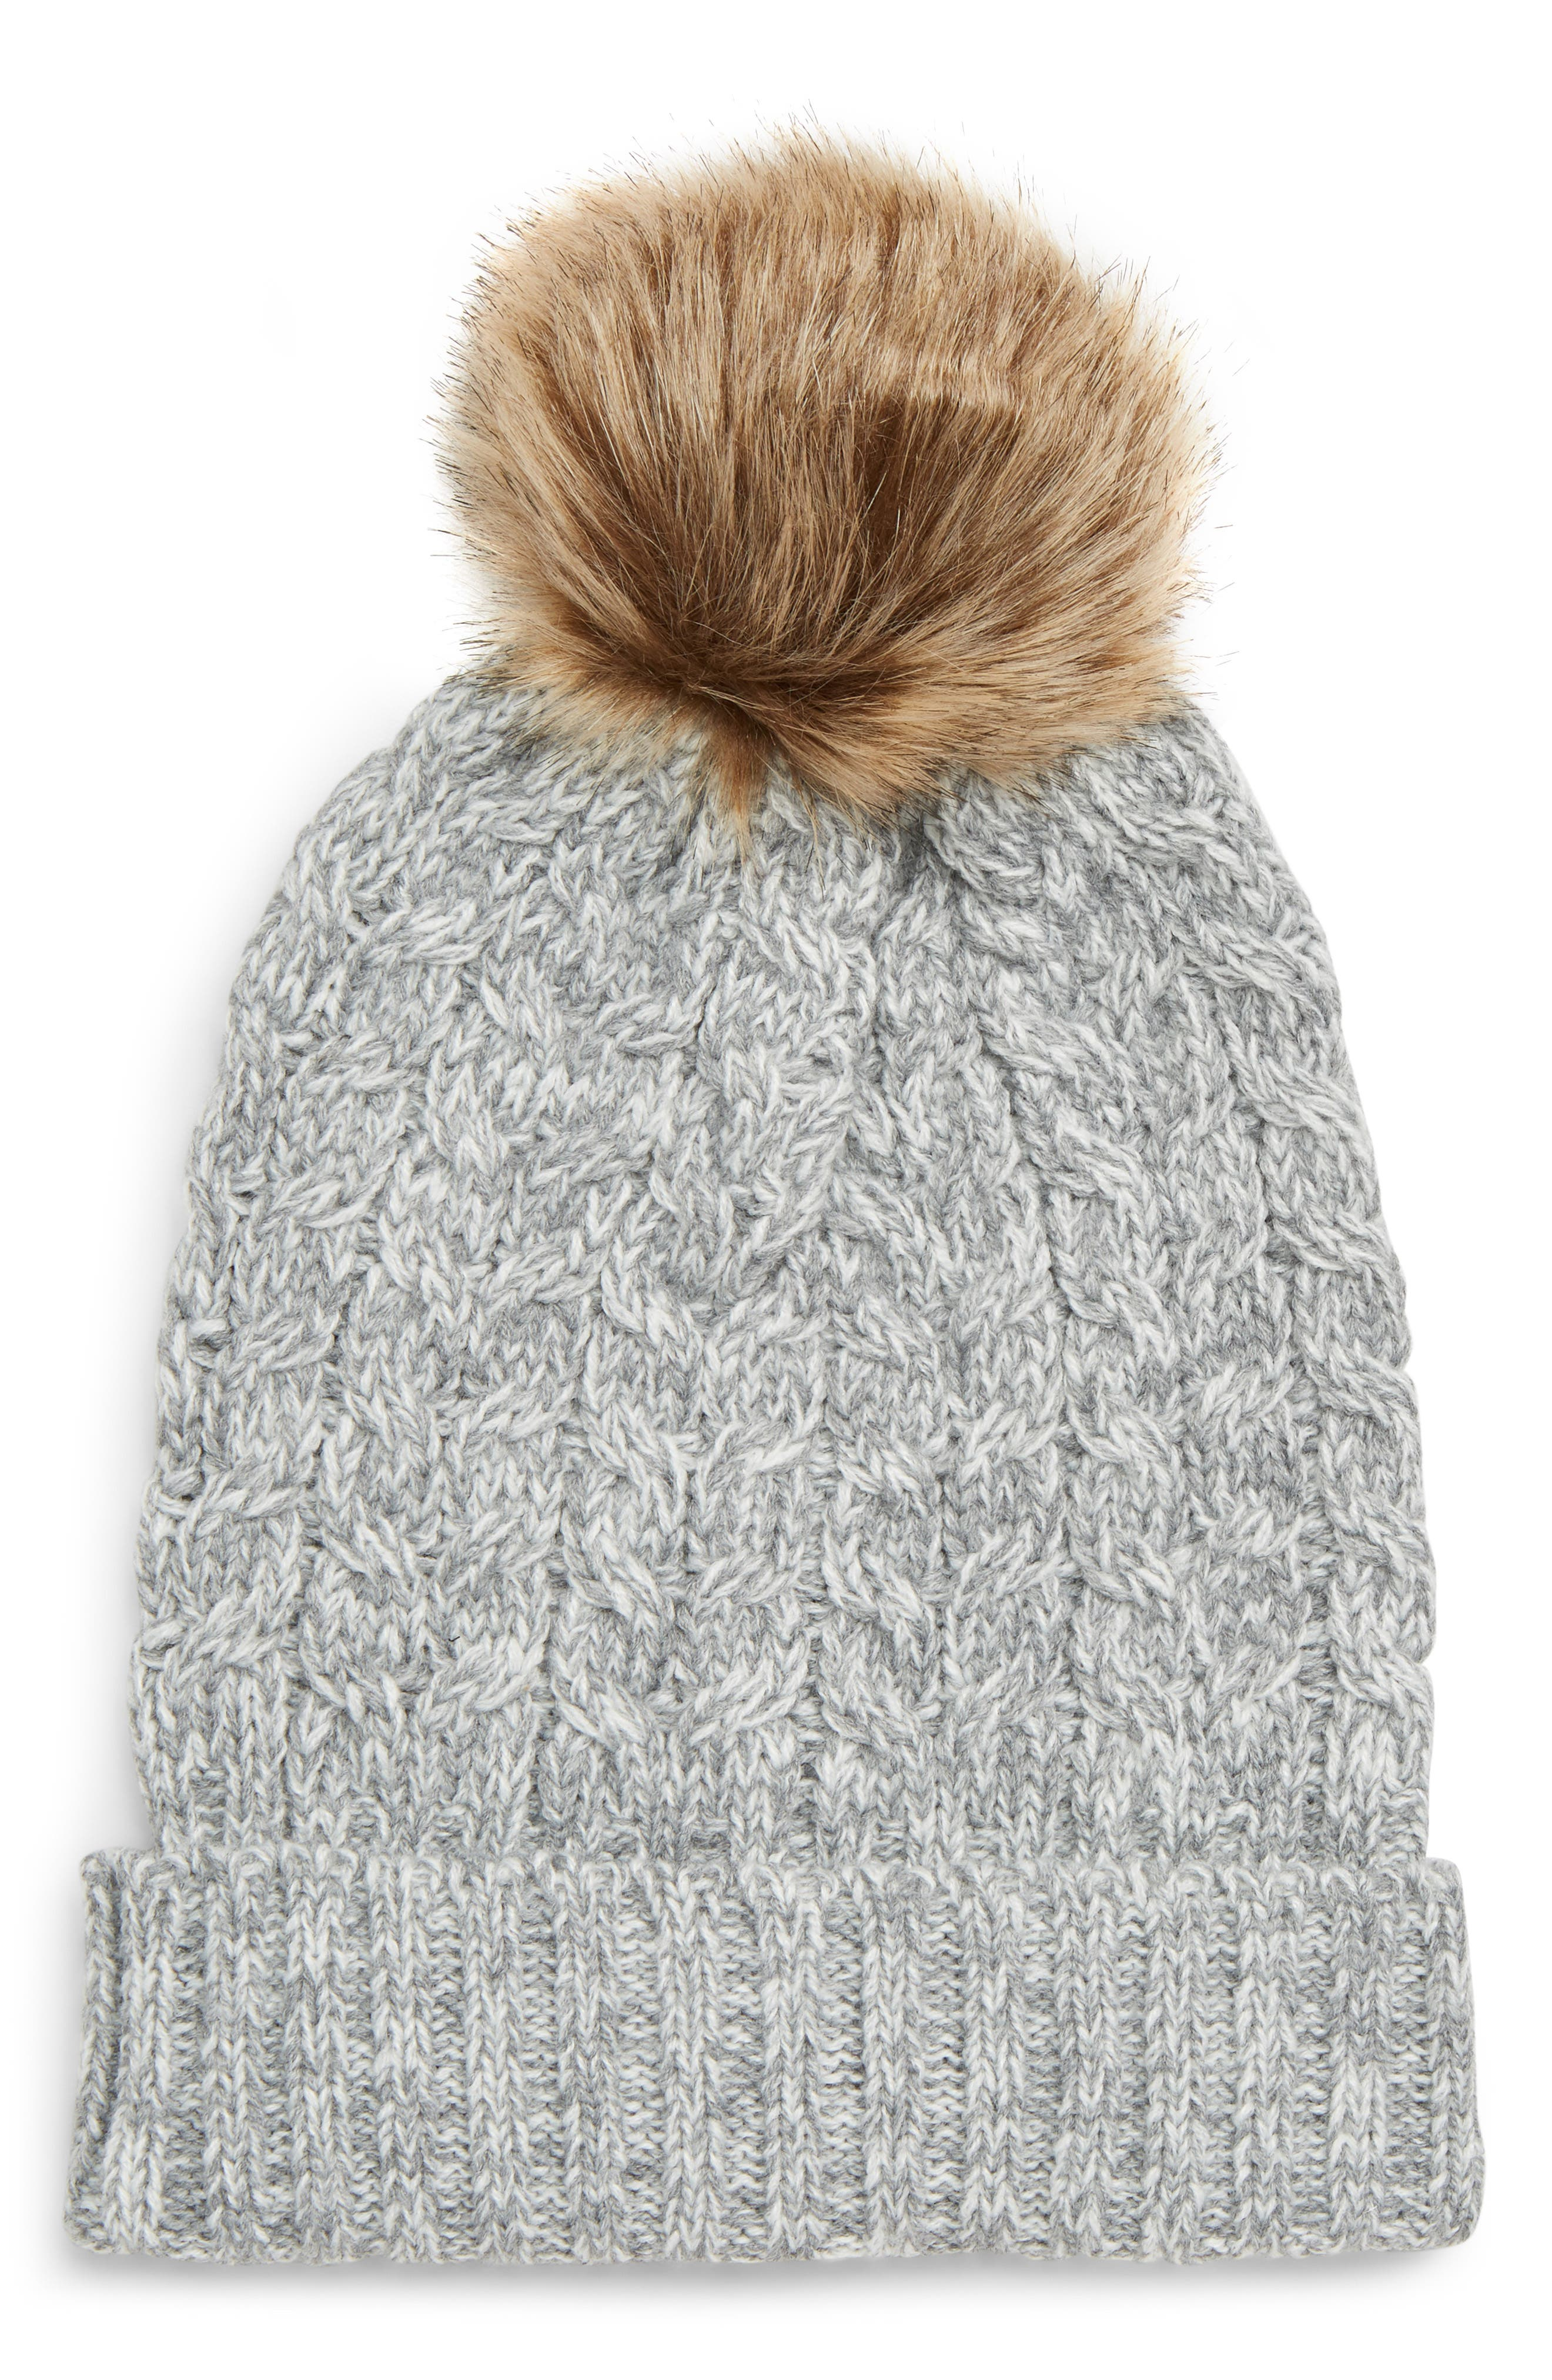 Cable Knit Beanie with Faux Fur Pom,                             Main thumbnail 1, color,                             GREY